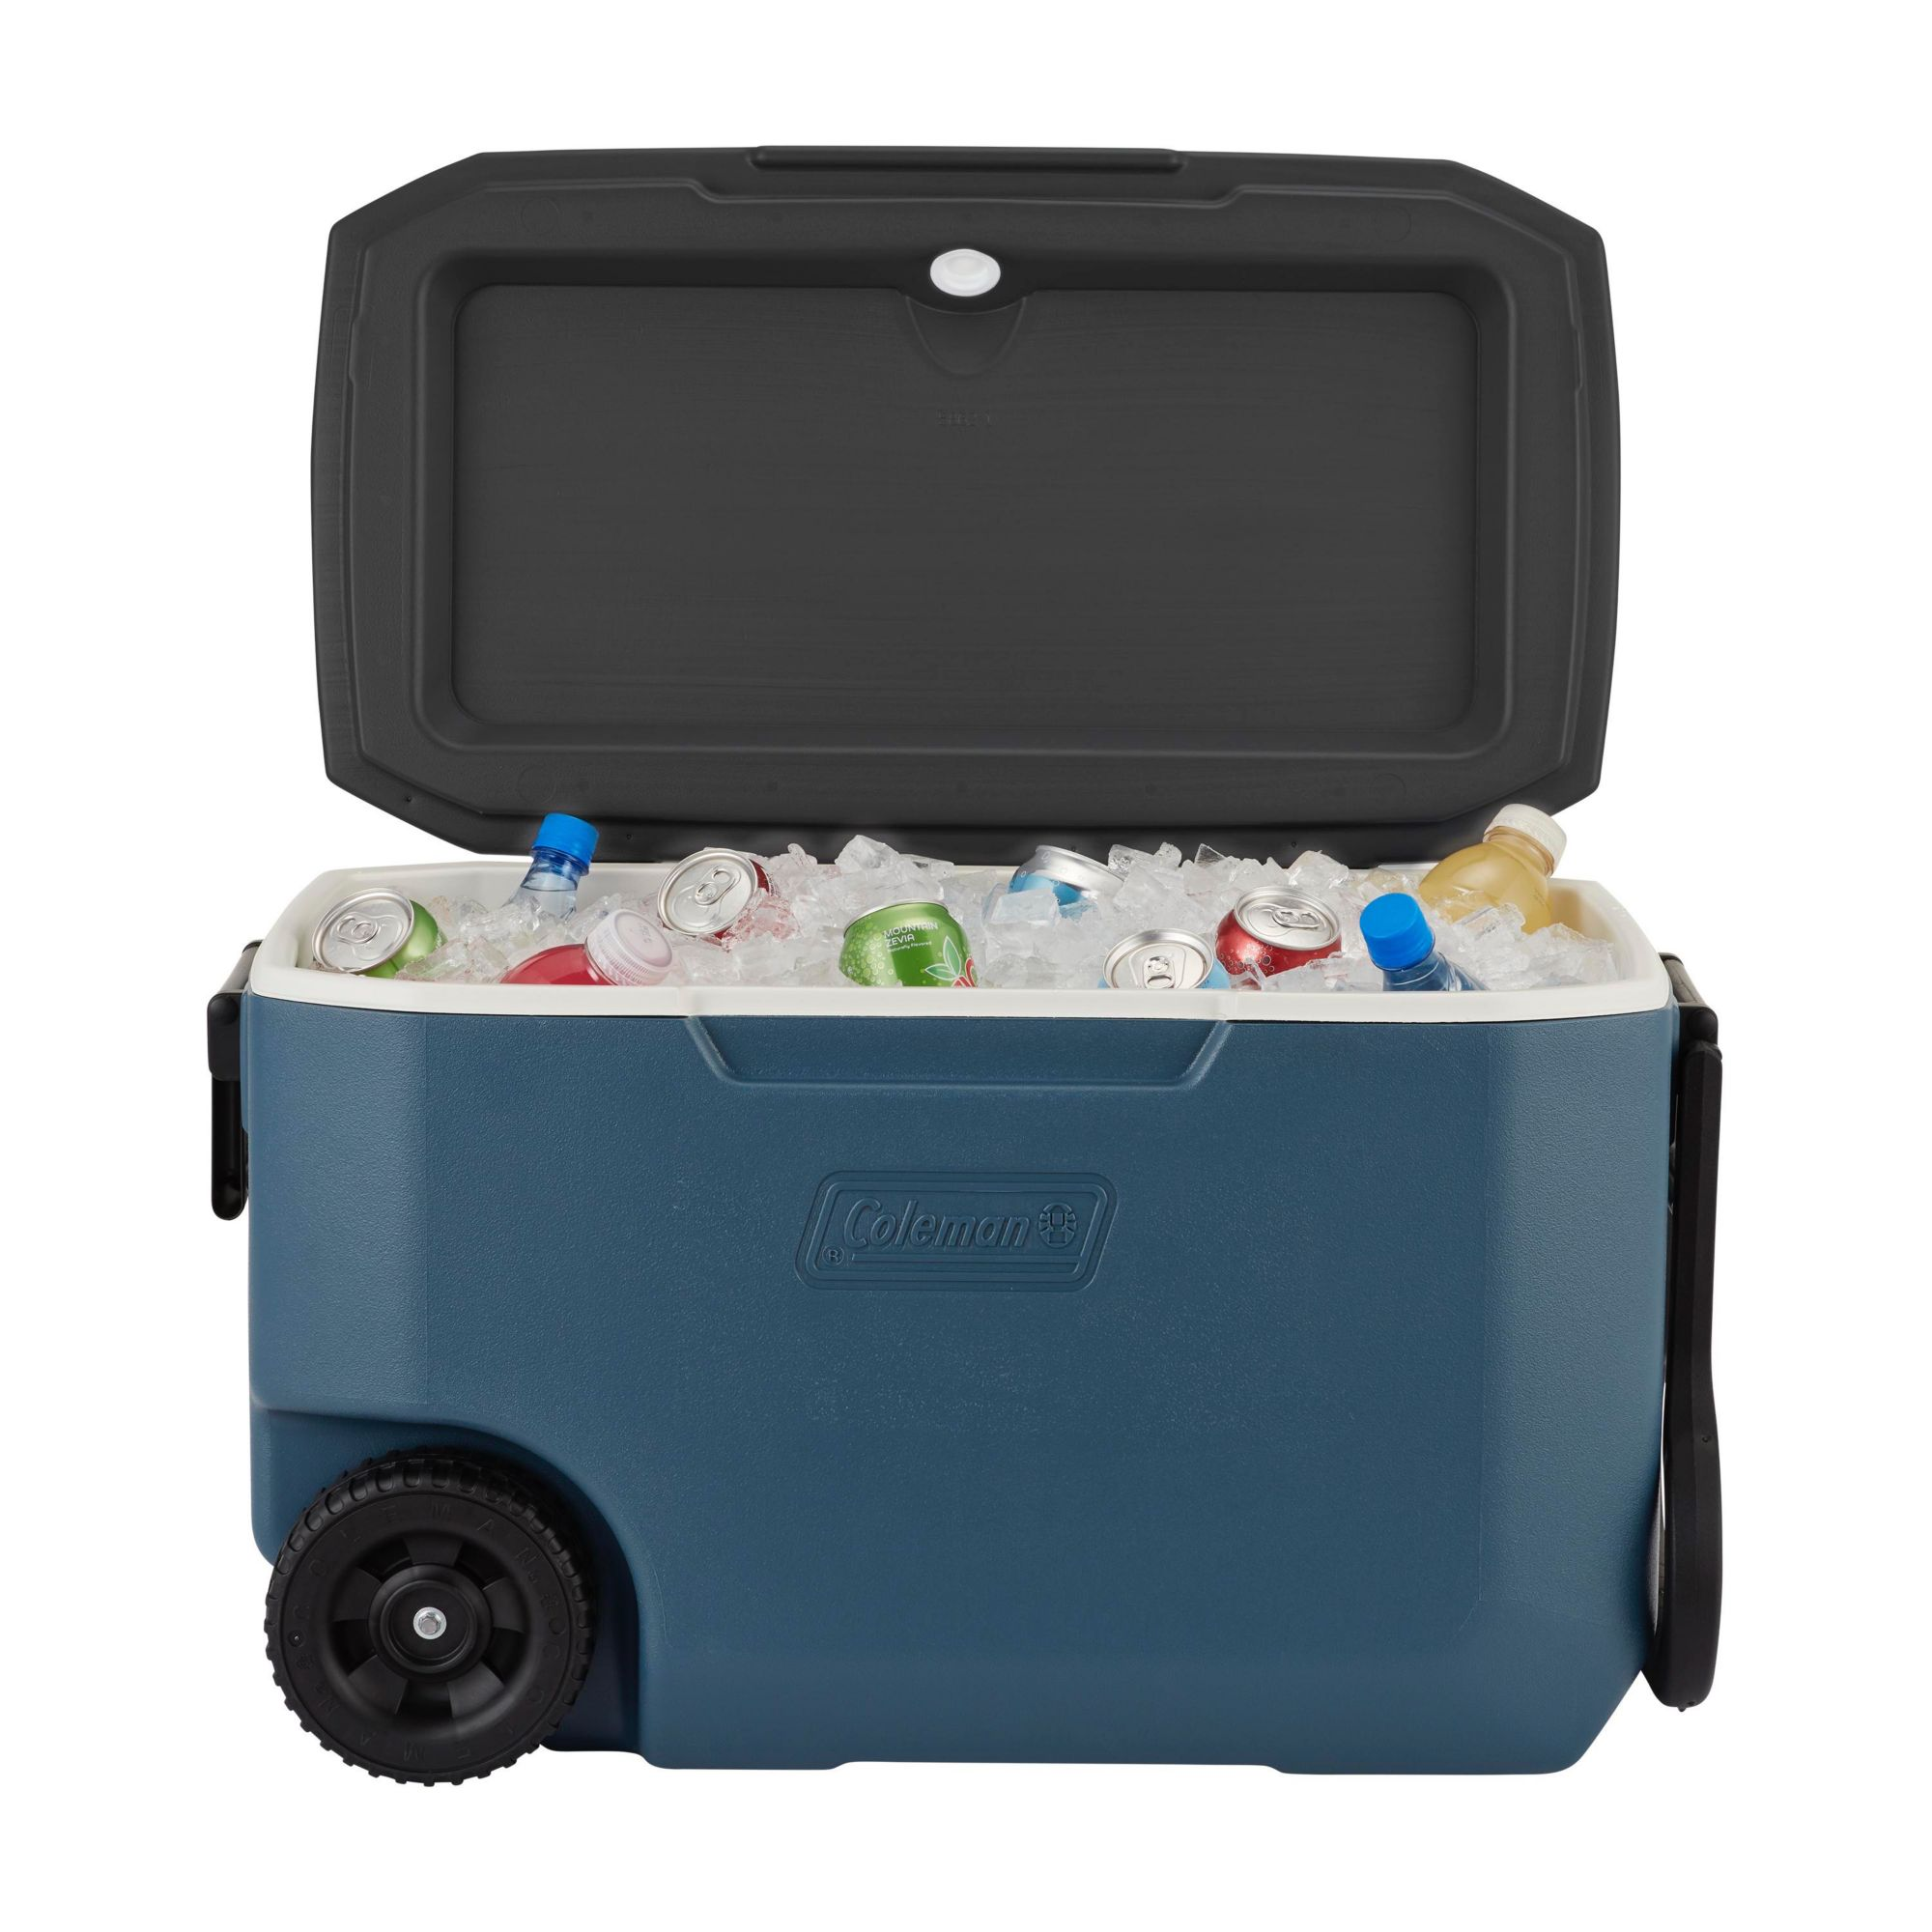 Blue Coleman 62-Quart Xtreme Ice Chest 5-Day Heavy-Duty Cooler with Wheels